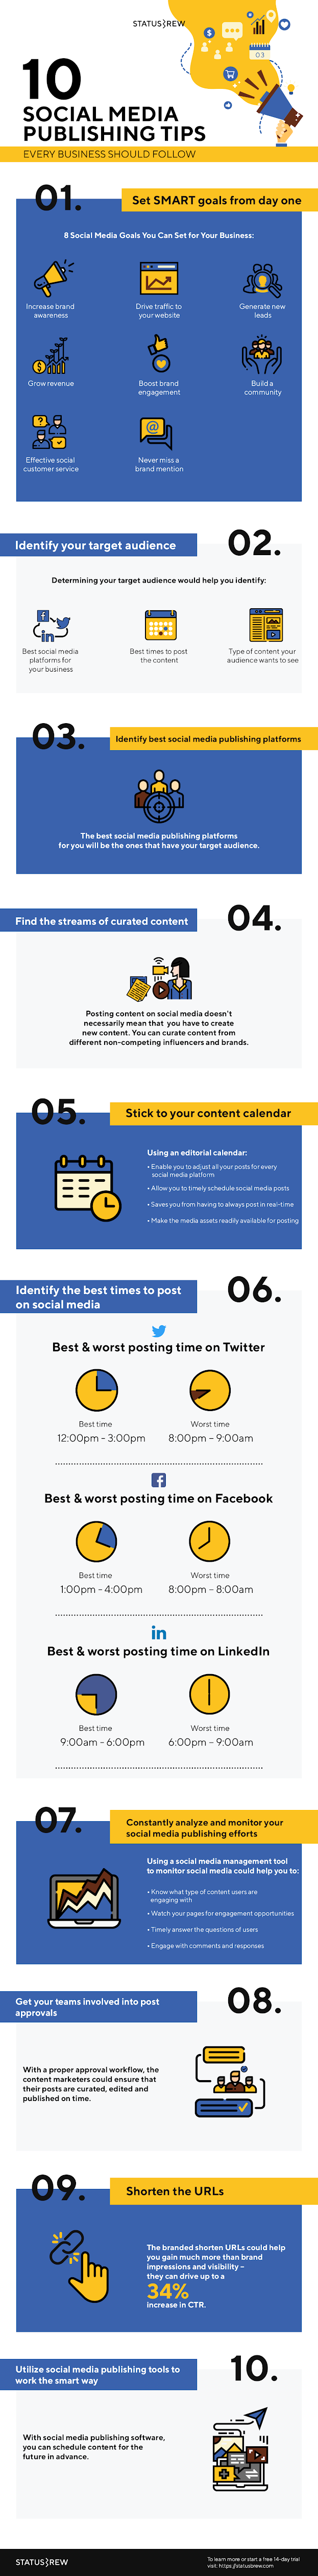 10 Social Media Publishing Tips for Businesses #infographic #Social Media Publishing #Publishing #Social Media #Business